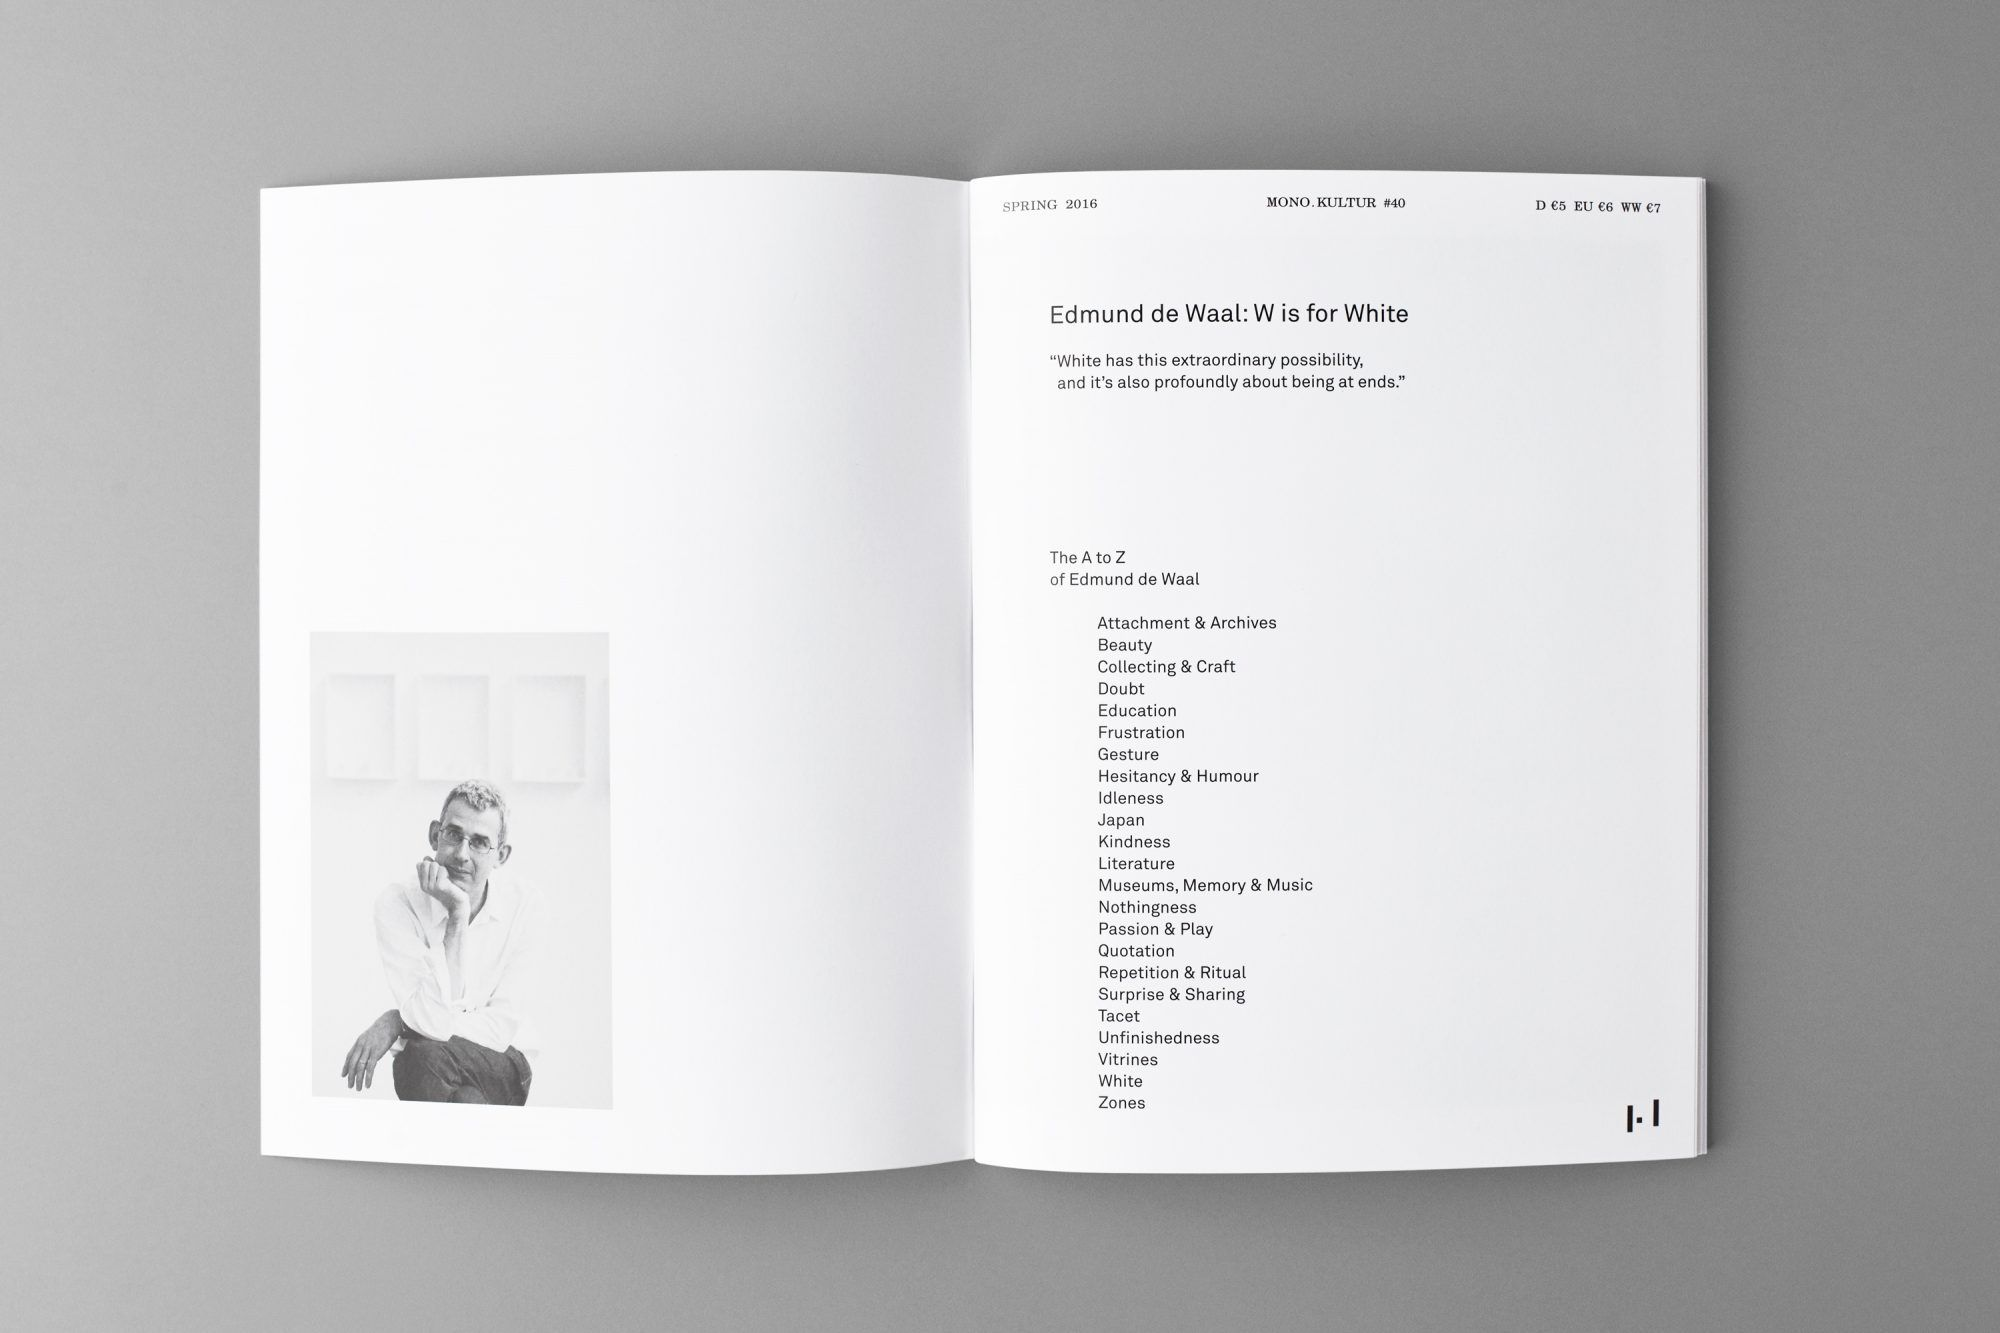 fbe28a42 Publications - Studio Claus Due / Graphic Design Studio / Copenhagen,  Denmark